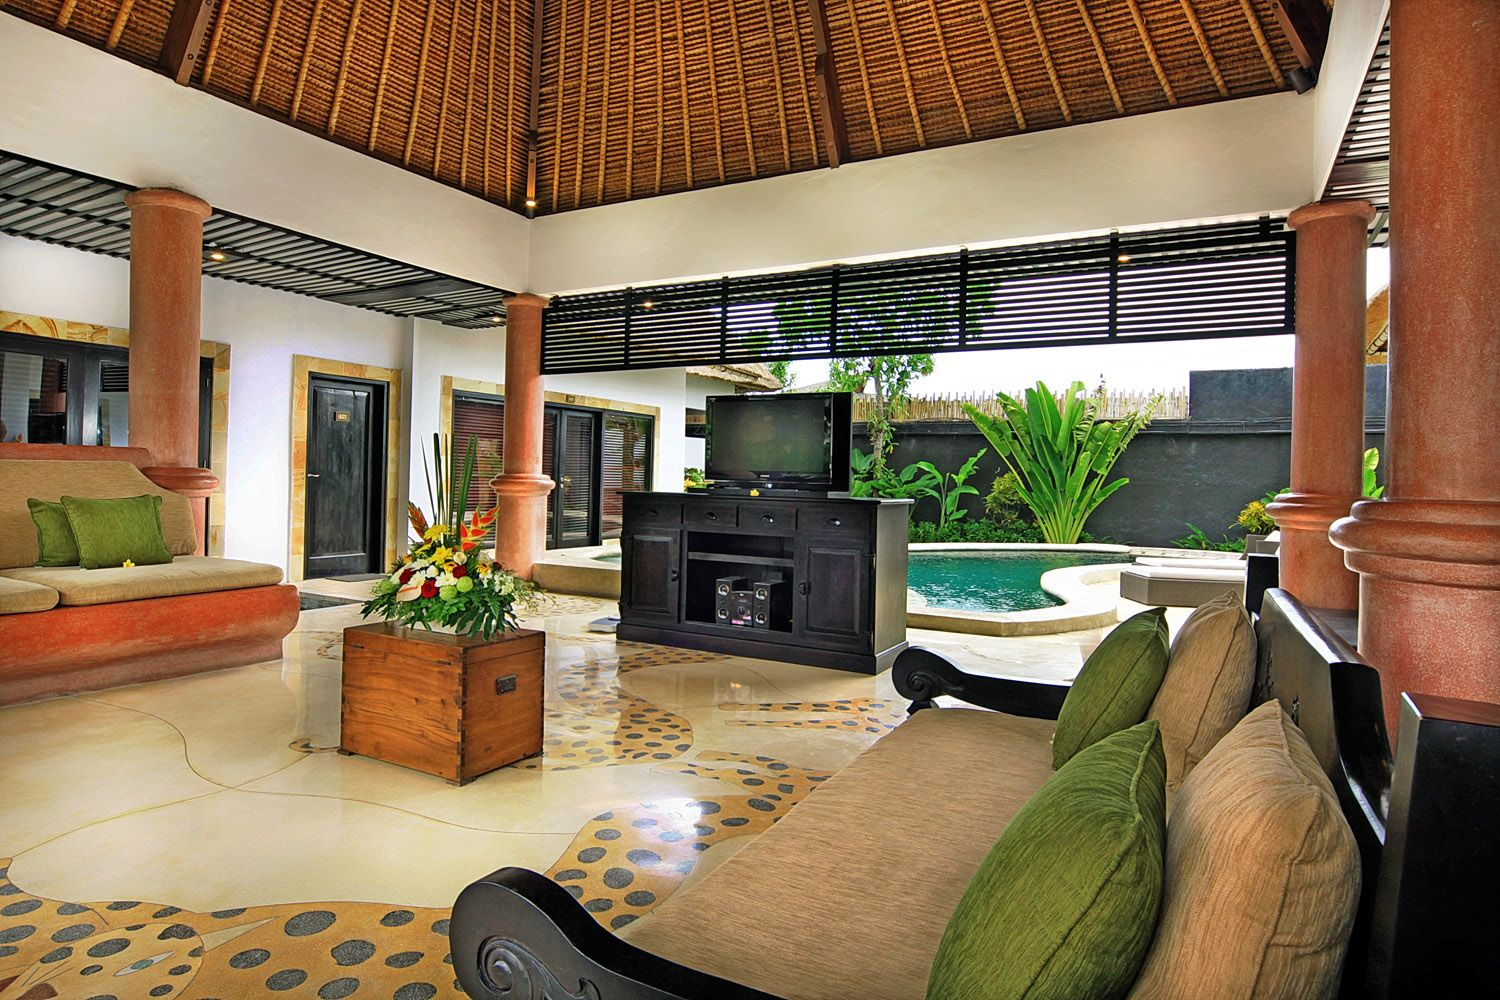 Presidential Suite. Spacious Three Bedrooms Villas set at spacious lush tropical garden environment, equipped with large free formed swimming pool and a plunge pool, wide space living room and kitchenette. Bed configuration, 0ne - king bed and two - twin bed rooms are the ideal room arrangement suitable for family and group of friends. Each of rooms is equipped with separate standing shower and enlarge innovative bathtub with fully equipped bathroom amenities.